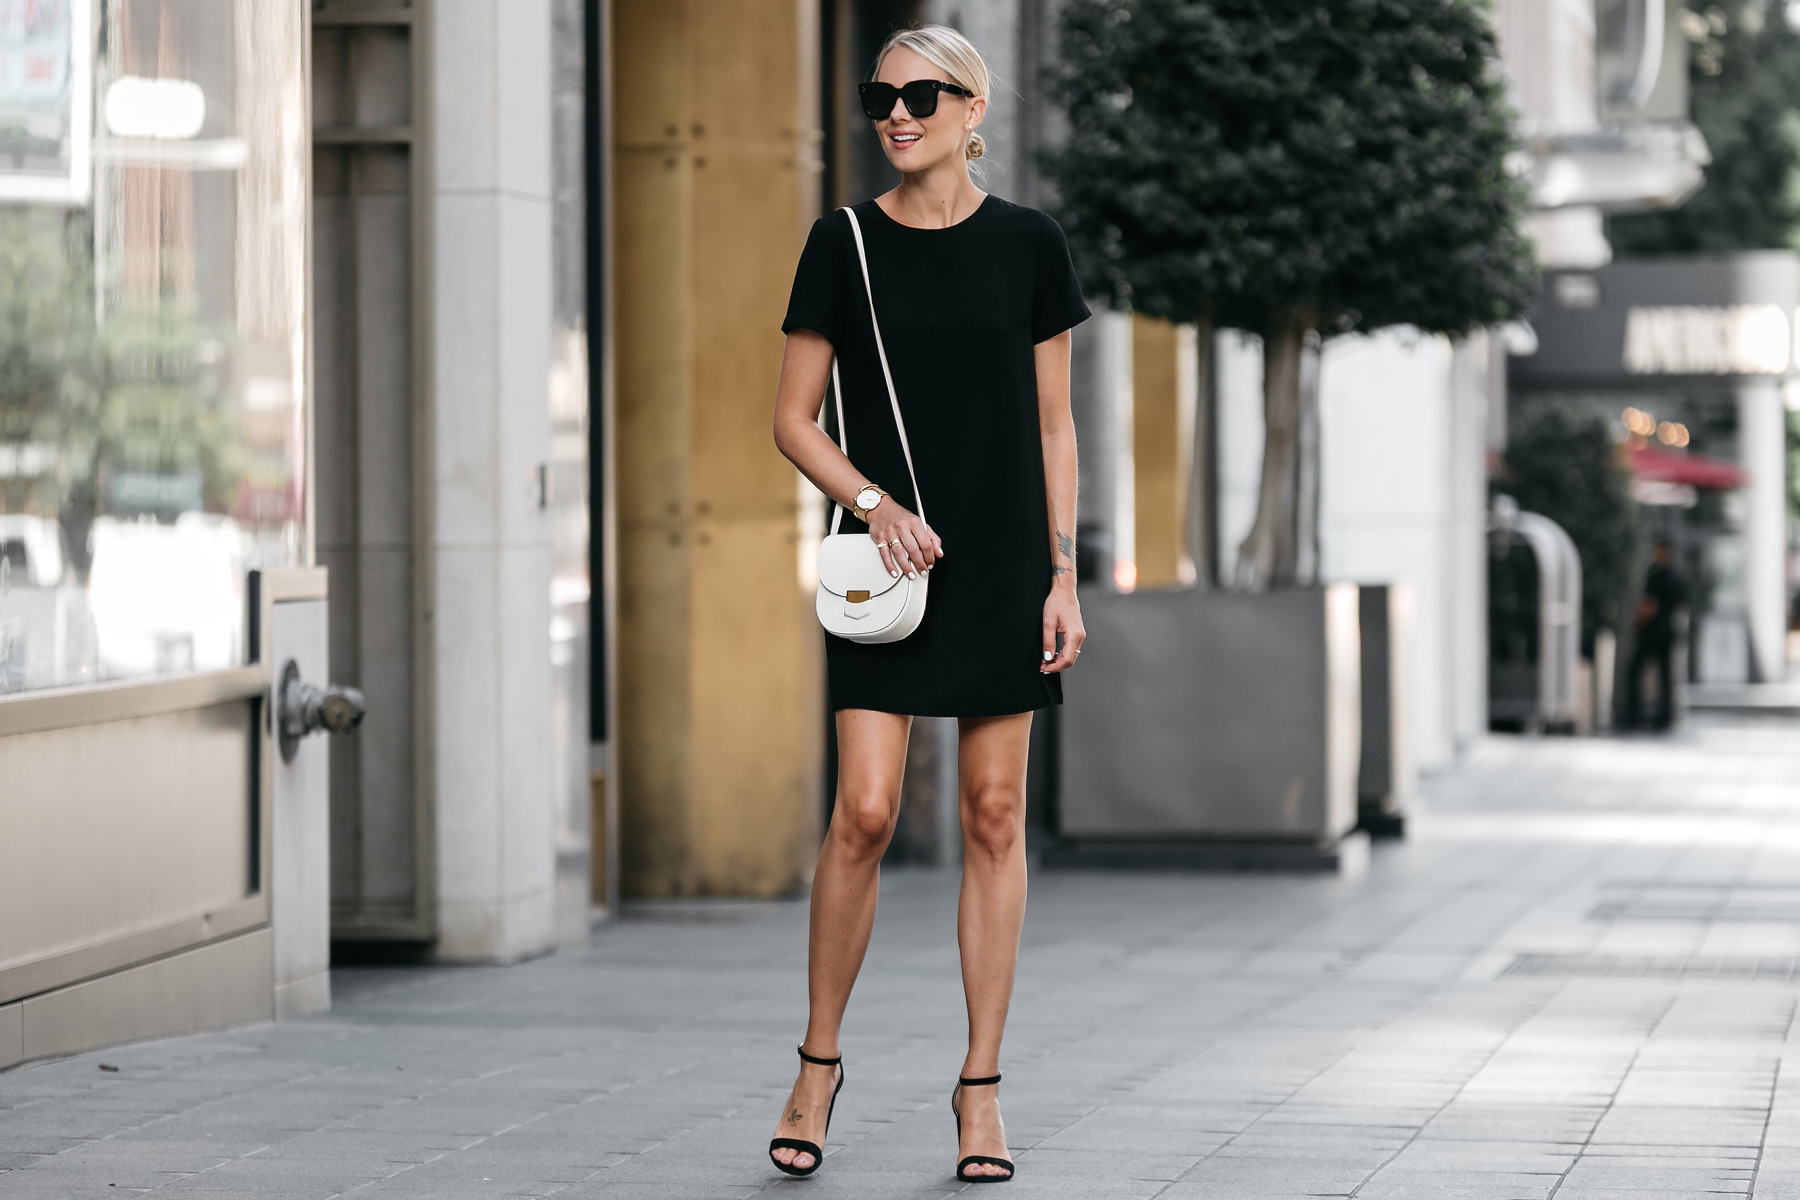 Blonde Wearing Nordstrom Black Shift Dress Outfit Black Ankle Strap Heeled Sandals Celine White Trotteur Handbag Fashion Jackson Dallas Blogger Fashion Blogger Street Style